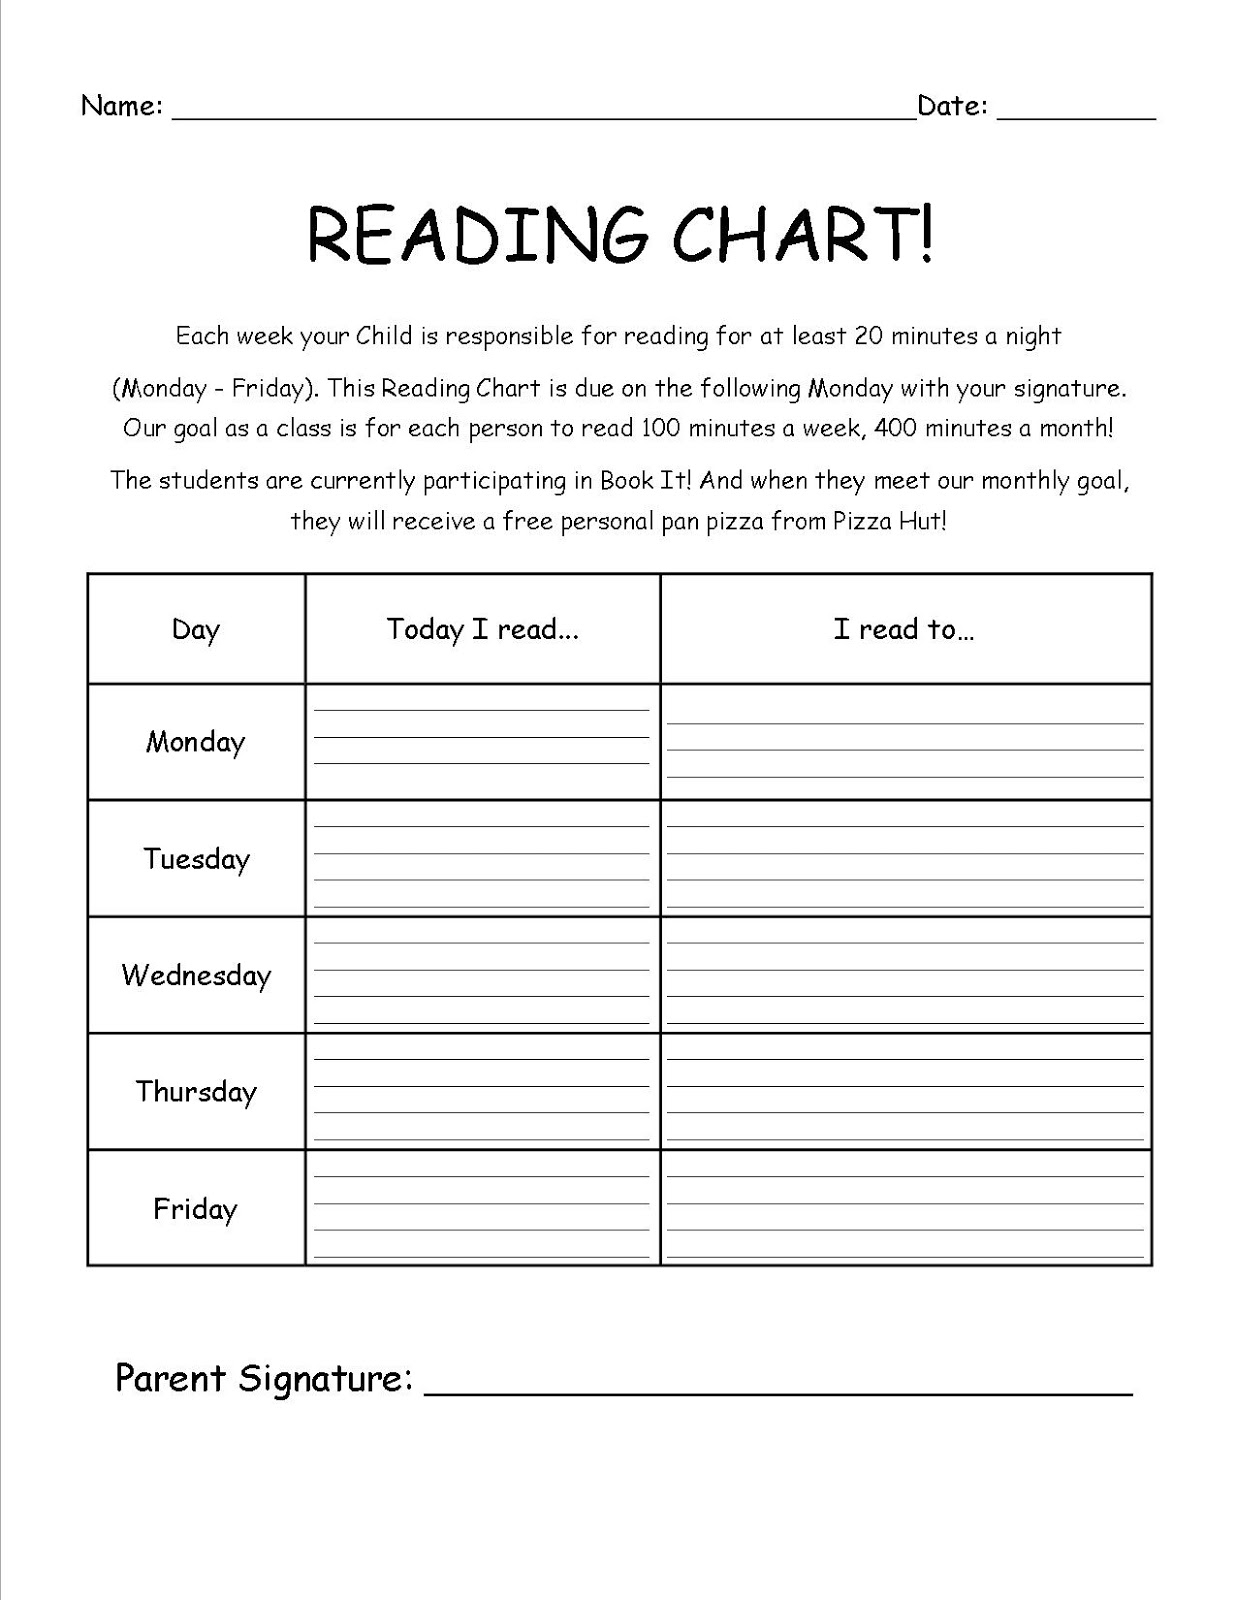 worksheet 5th Grade Reading Comprehension Worksheets Free free printable reading comprehension worksheets for 6th grade fifth amp printables